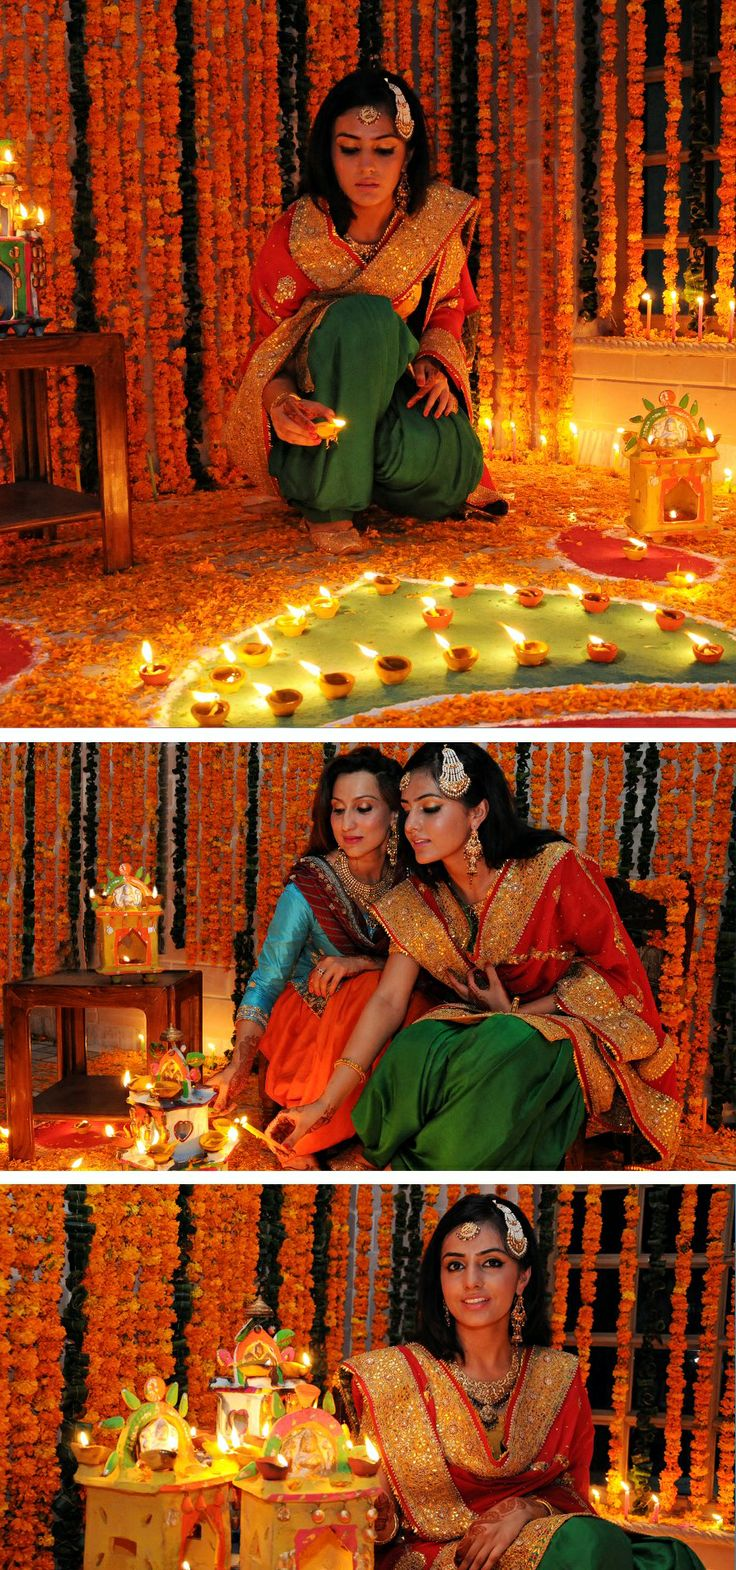 Mehndi celebrations in Pakistan